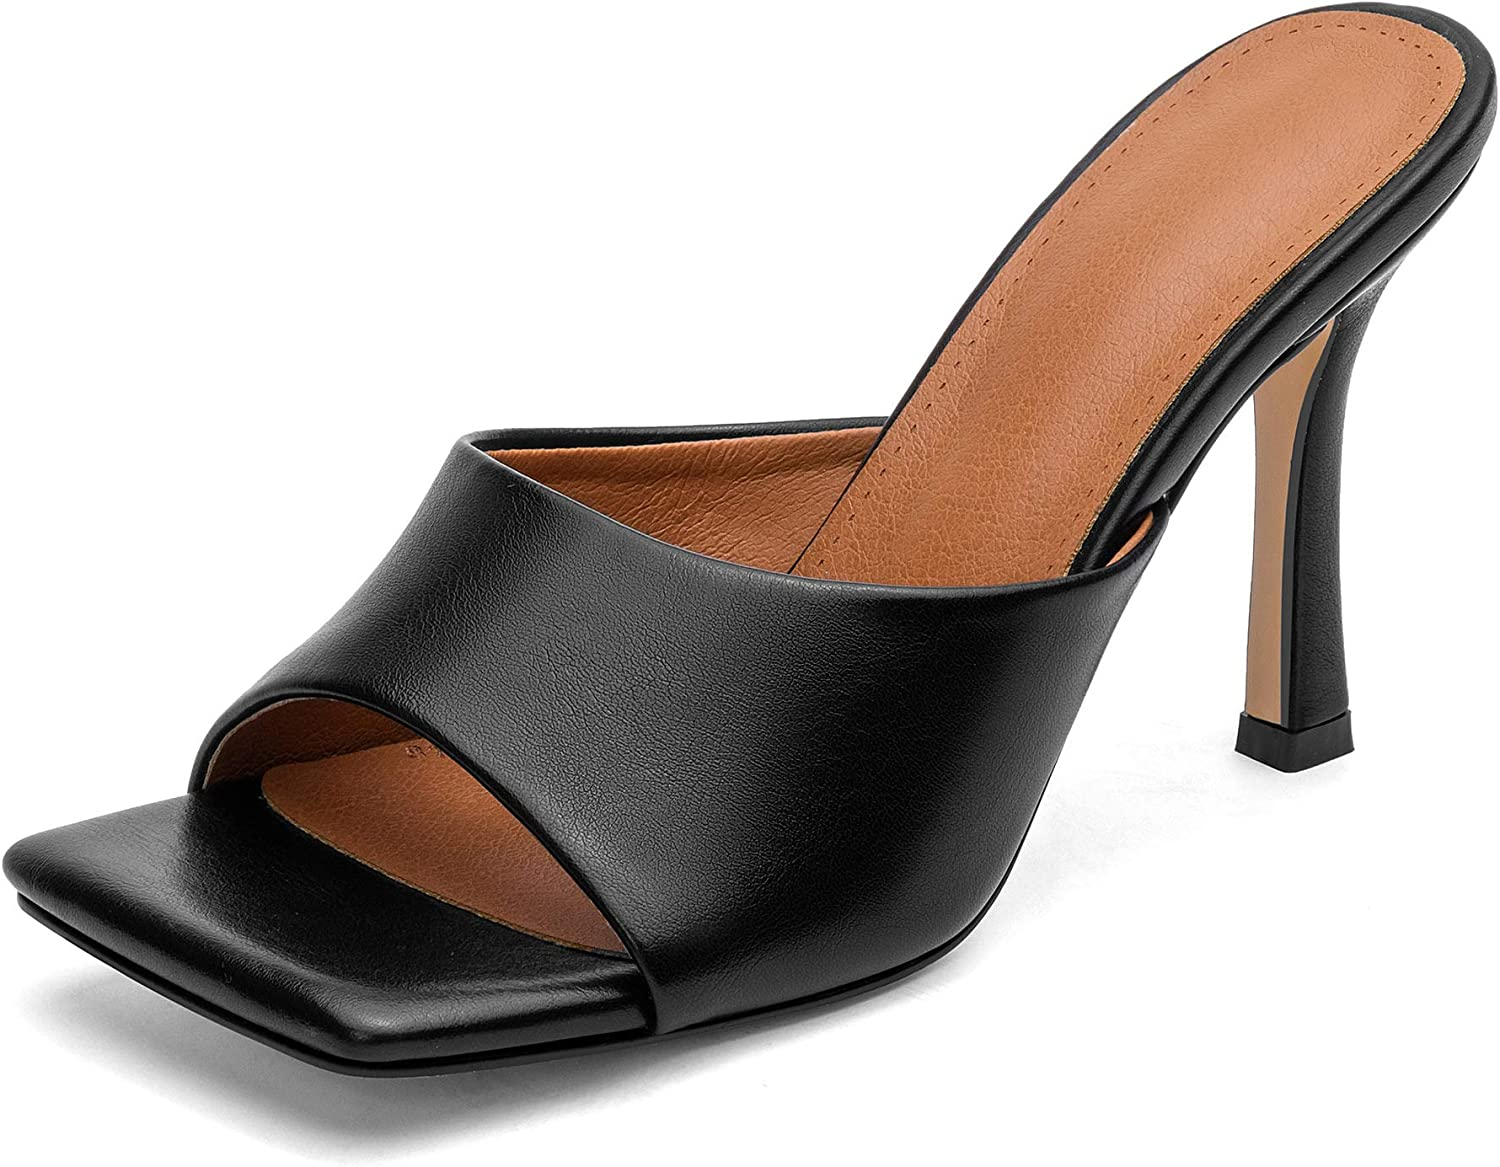 ZUQIN Our shop OFFers the best service San Francisco Mall Summer Peep Toe Stiletto High Heels for Slippers W Sandals